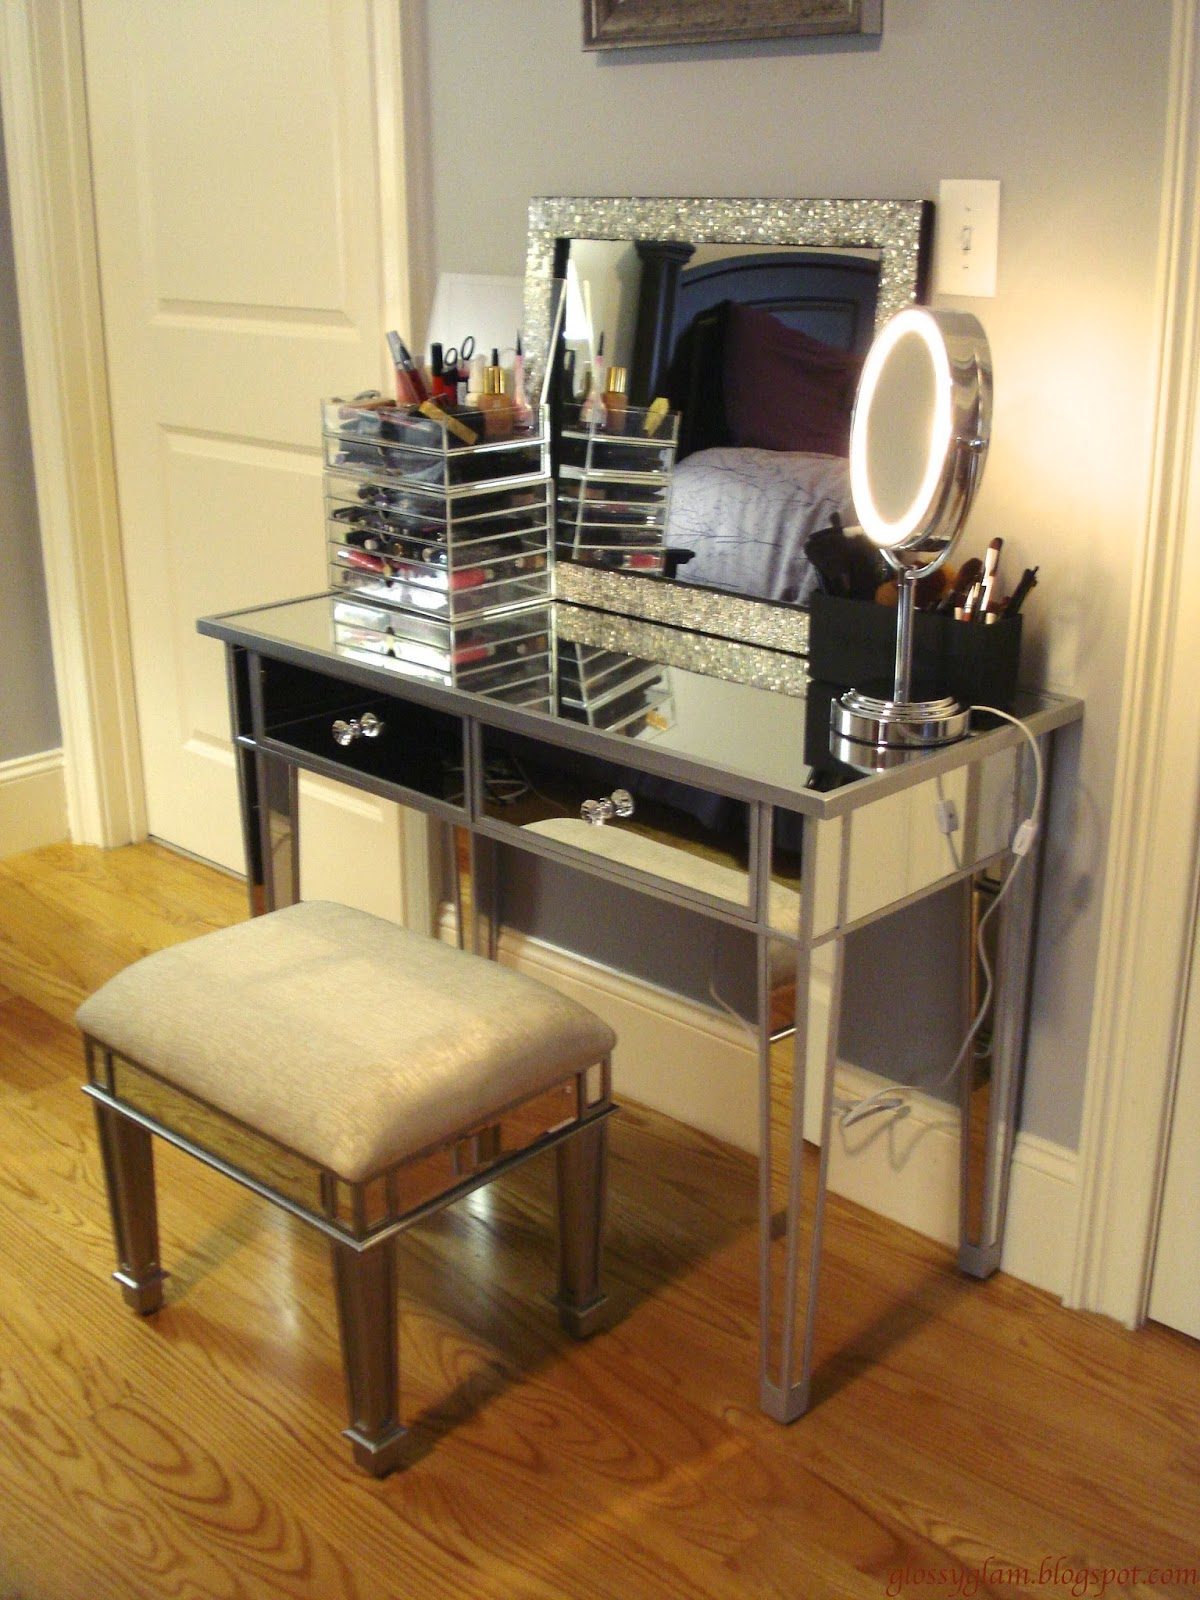 Discount Bedroom Vanities | Mirrored Vanity Set | Bedroom Vanity with Lights